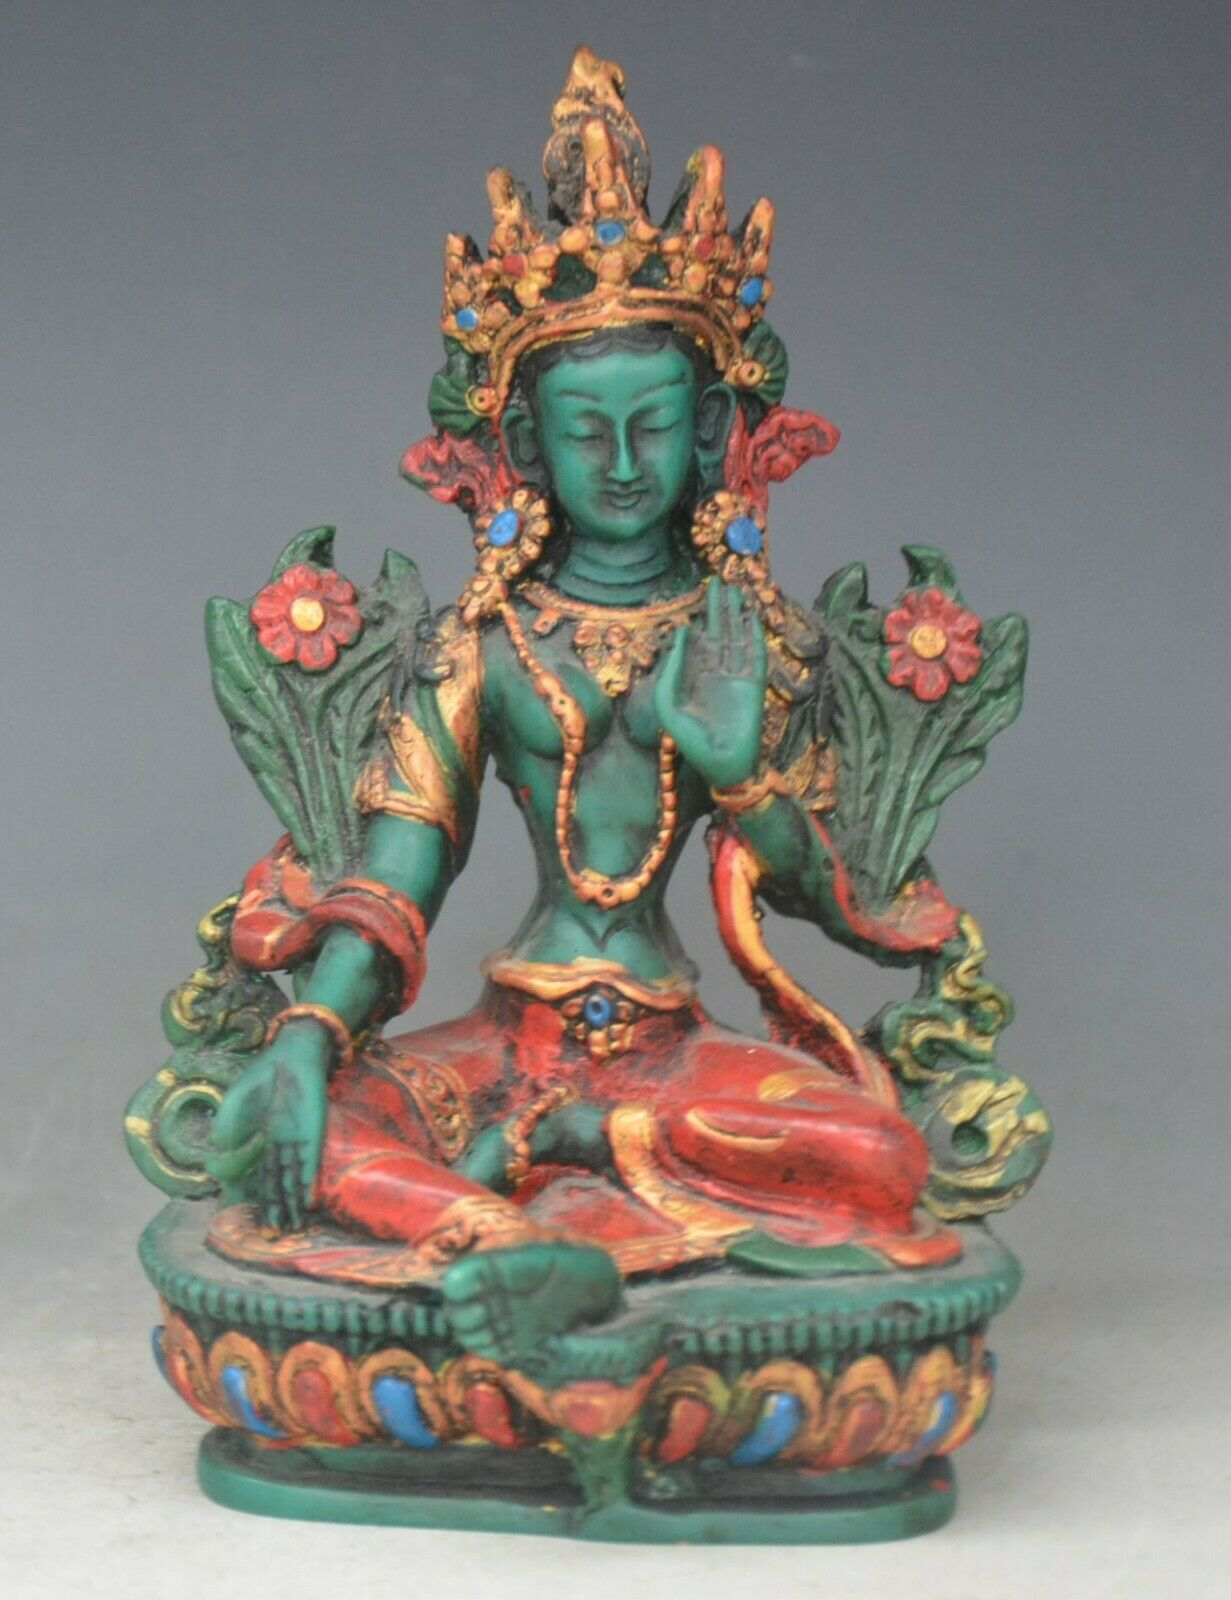 Tibet Antique Lacquerware Green Tara Goddess Guanyin Statue Buddha Statue Safe And Good Luck Home Decoration